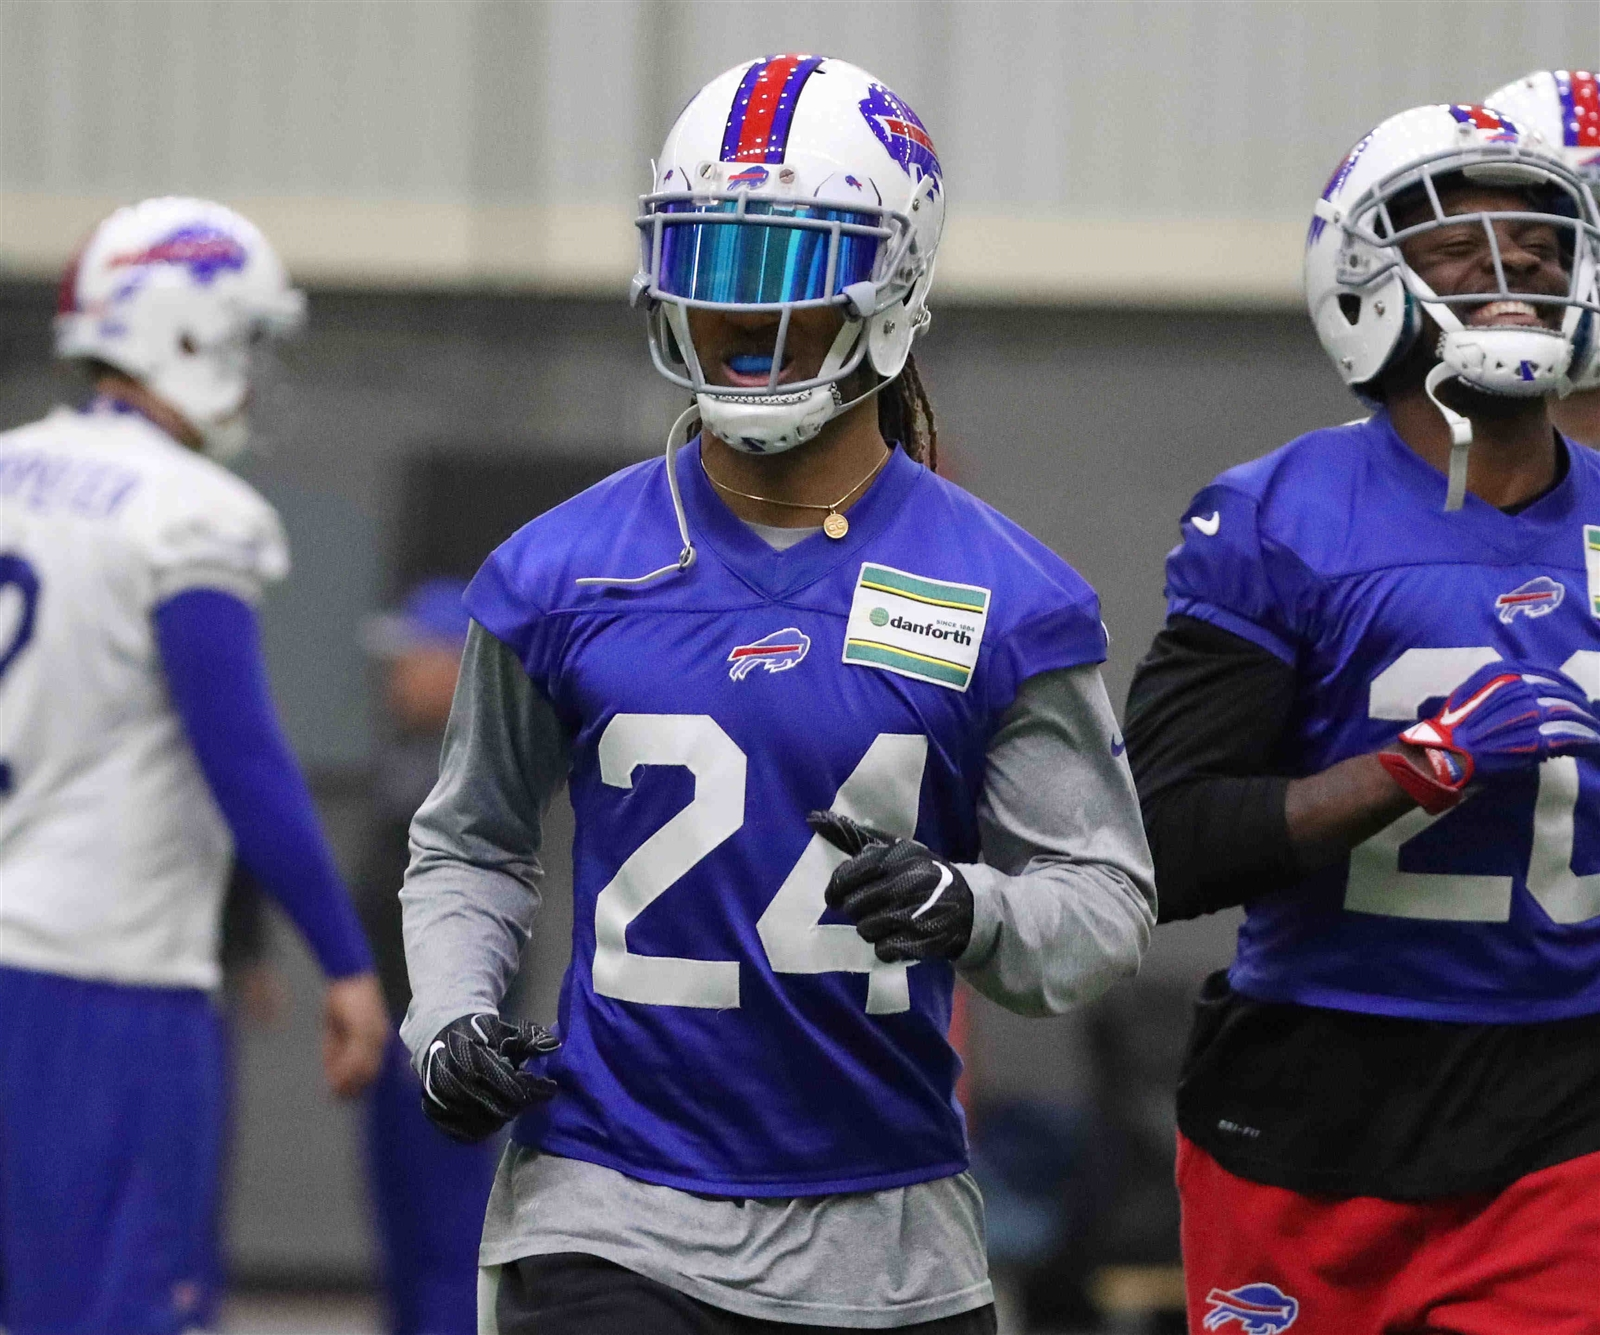 Buffalo Bills cornerback Stephon Gilmore (24) participates in drills during practice.